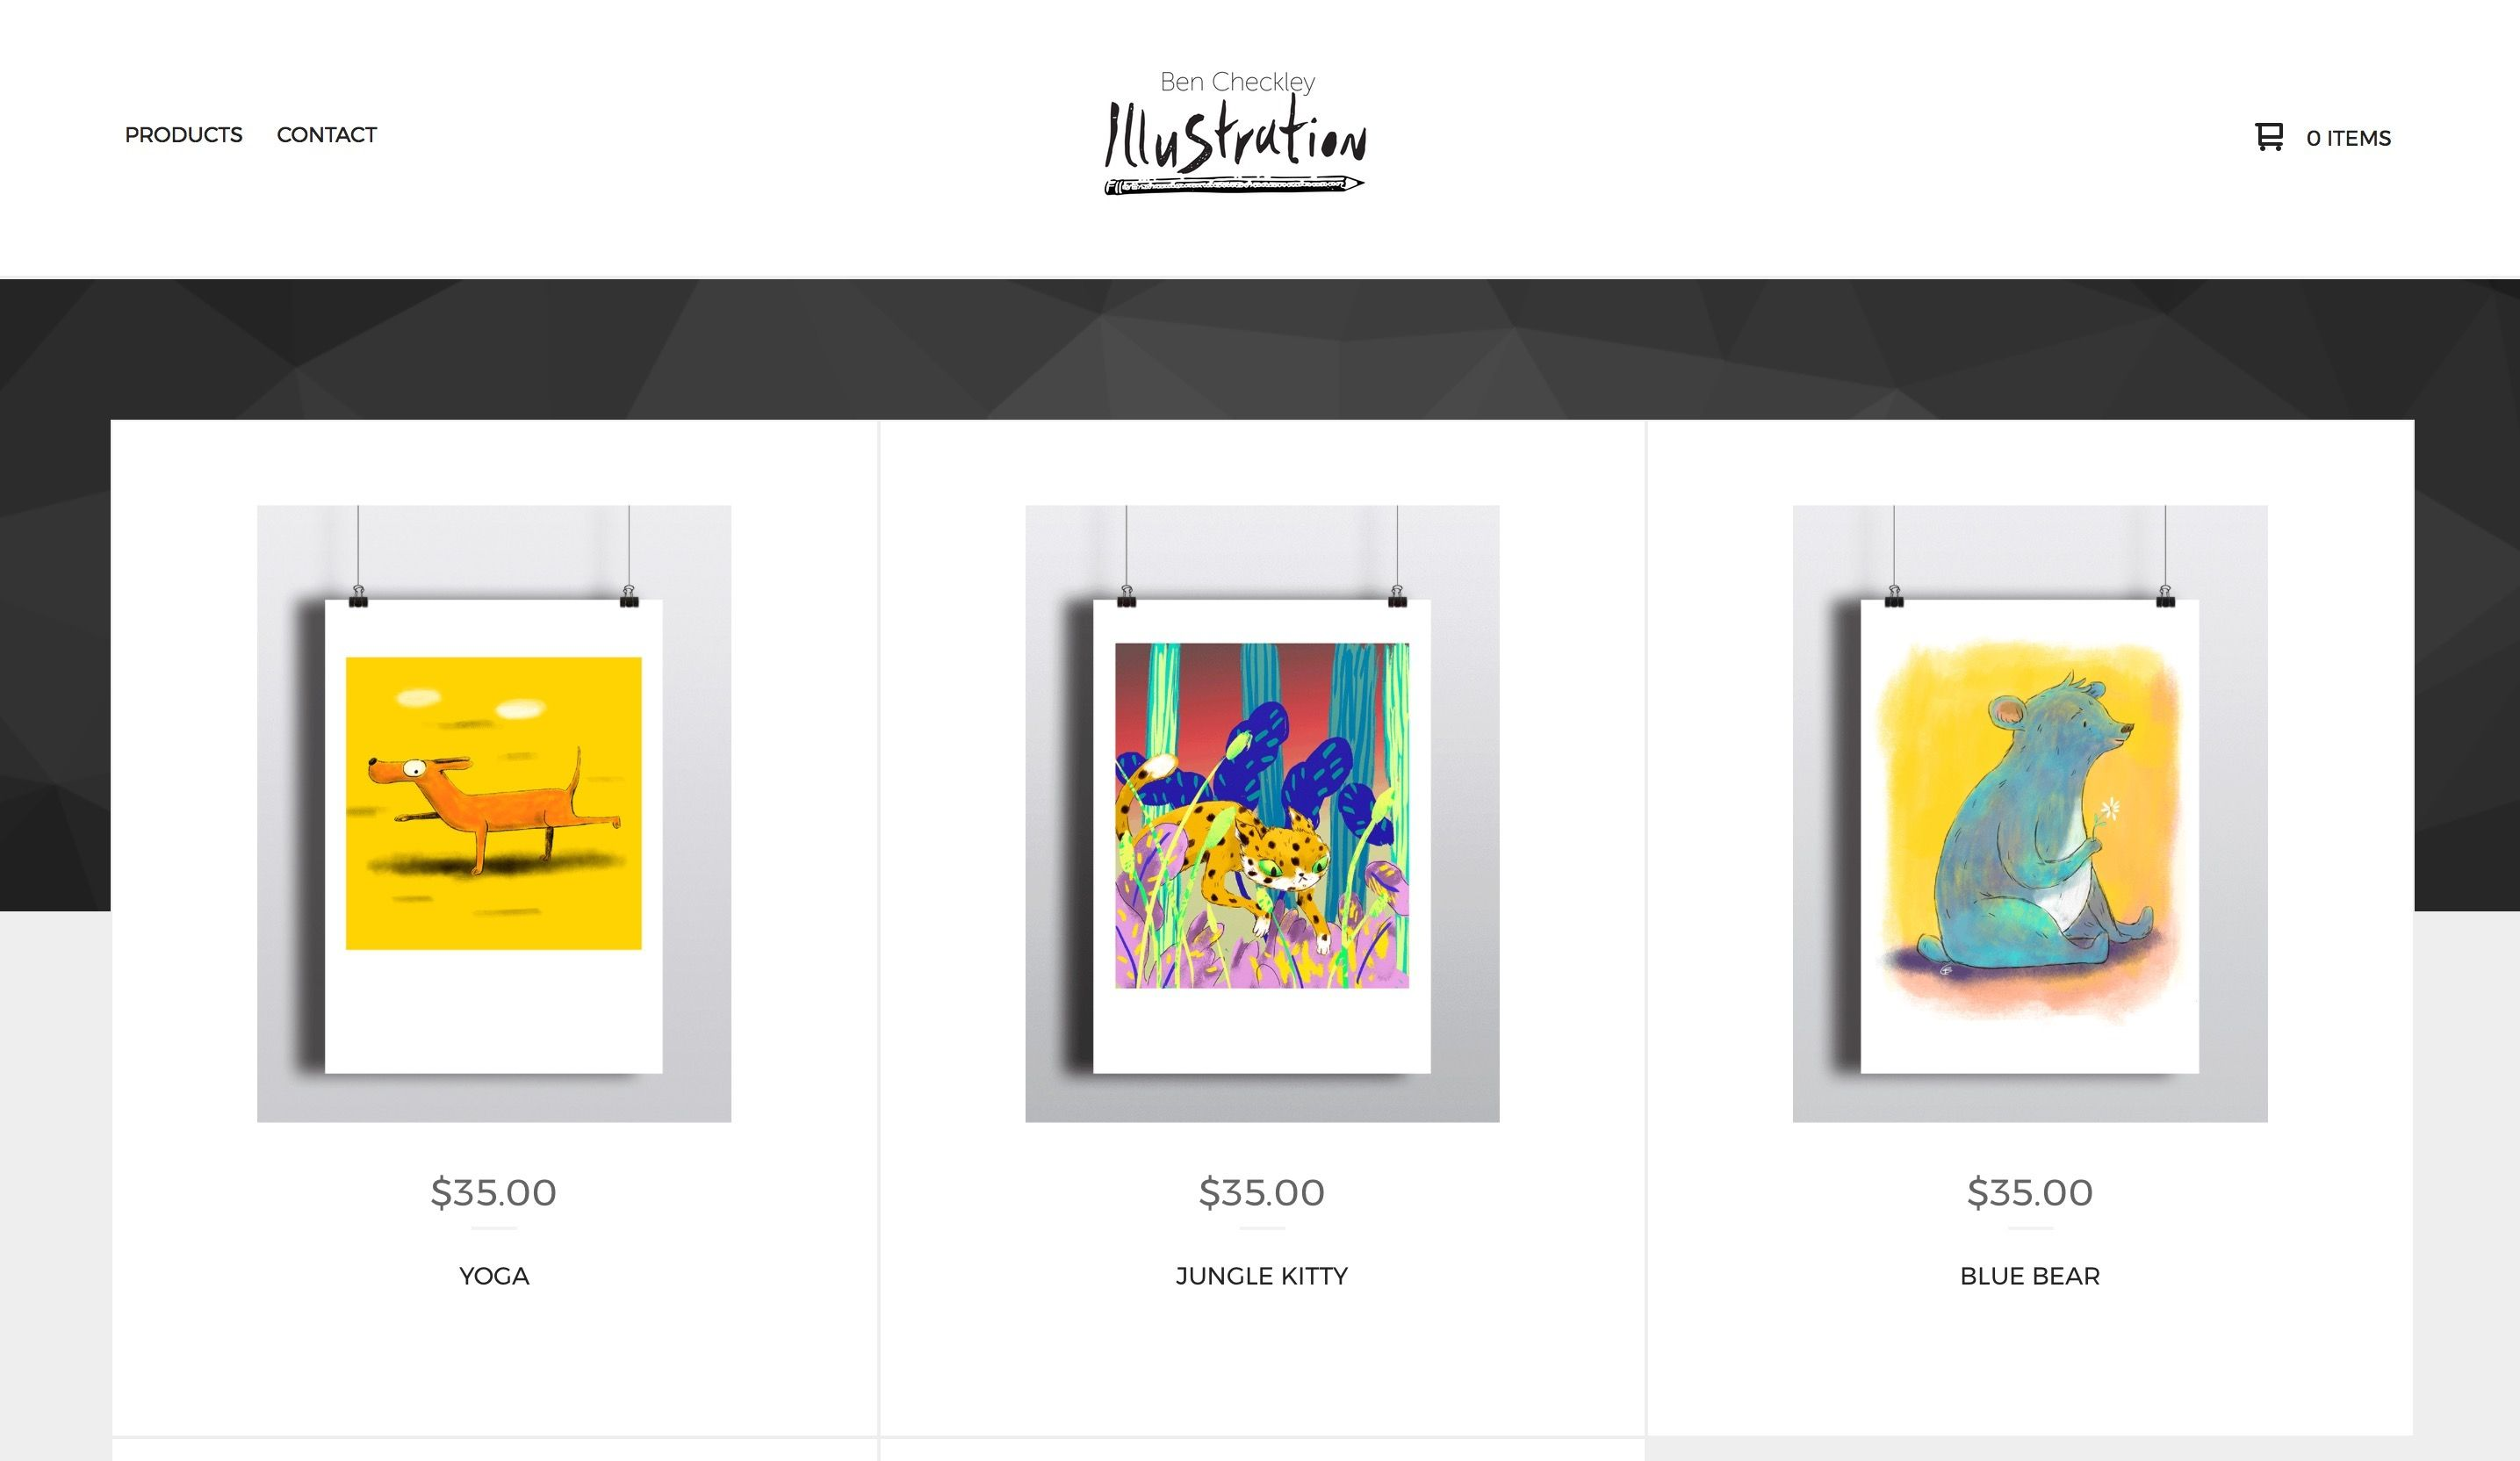 Ive just updated my online store over @bigcartel you can check it out at bencheckleyillustration.bigcartel.com. If any one has any suggestions for future updates and prints they would like to see in my store please send your feedback my way. It will be very appreciated.  #bigcartel#fineartprints#illustration#imagescience